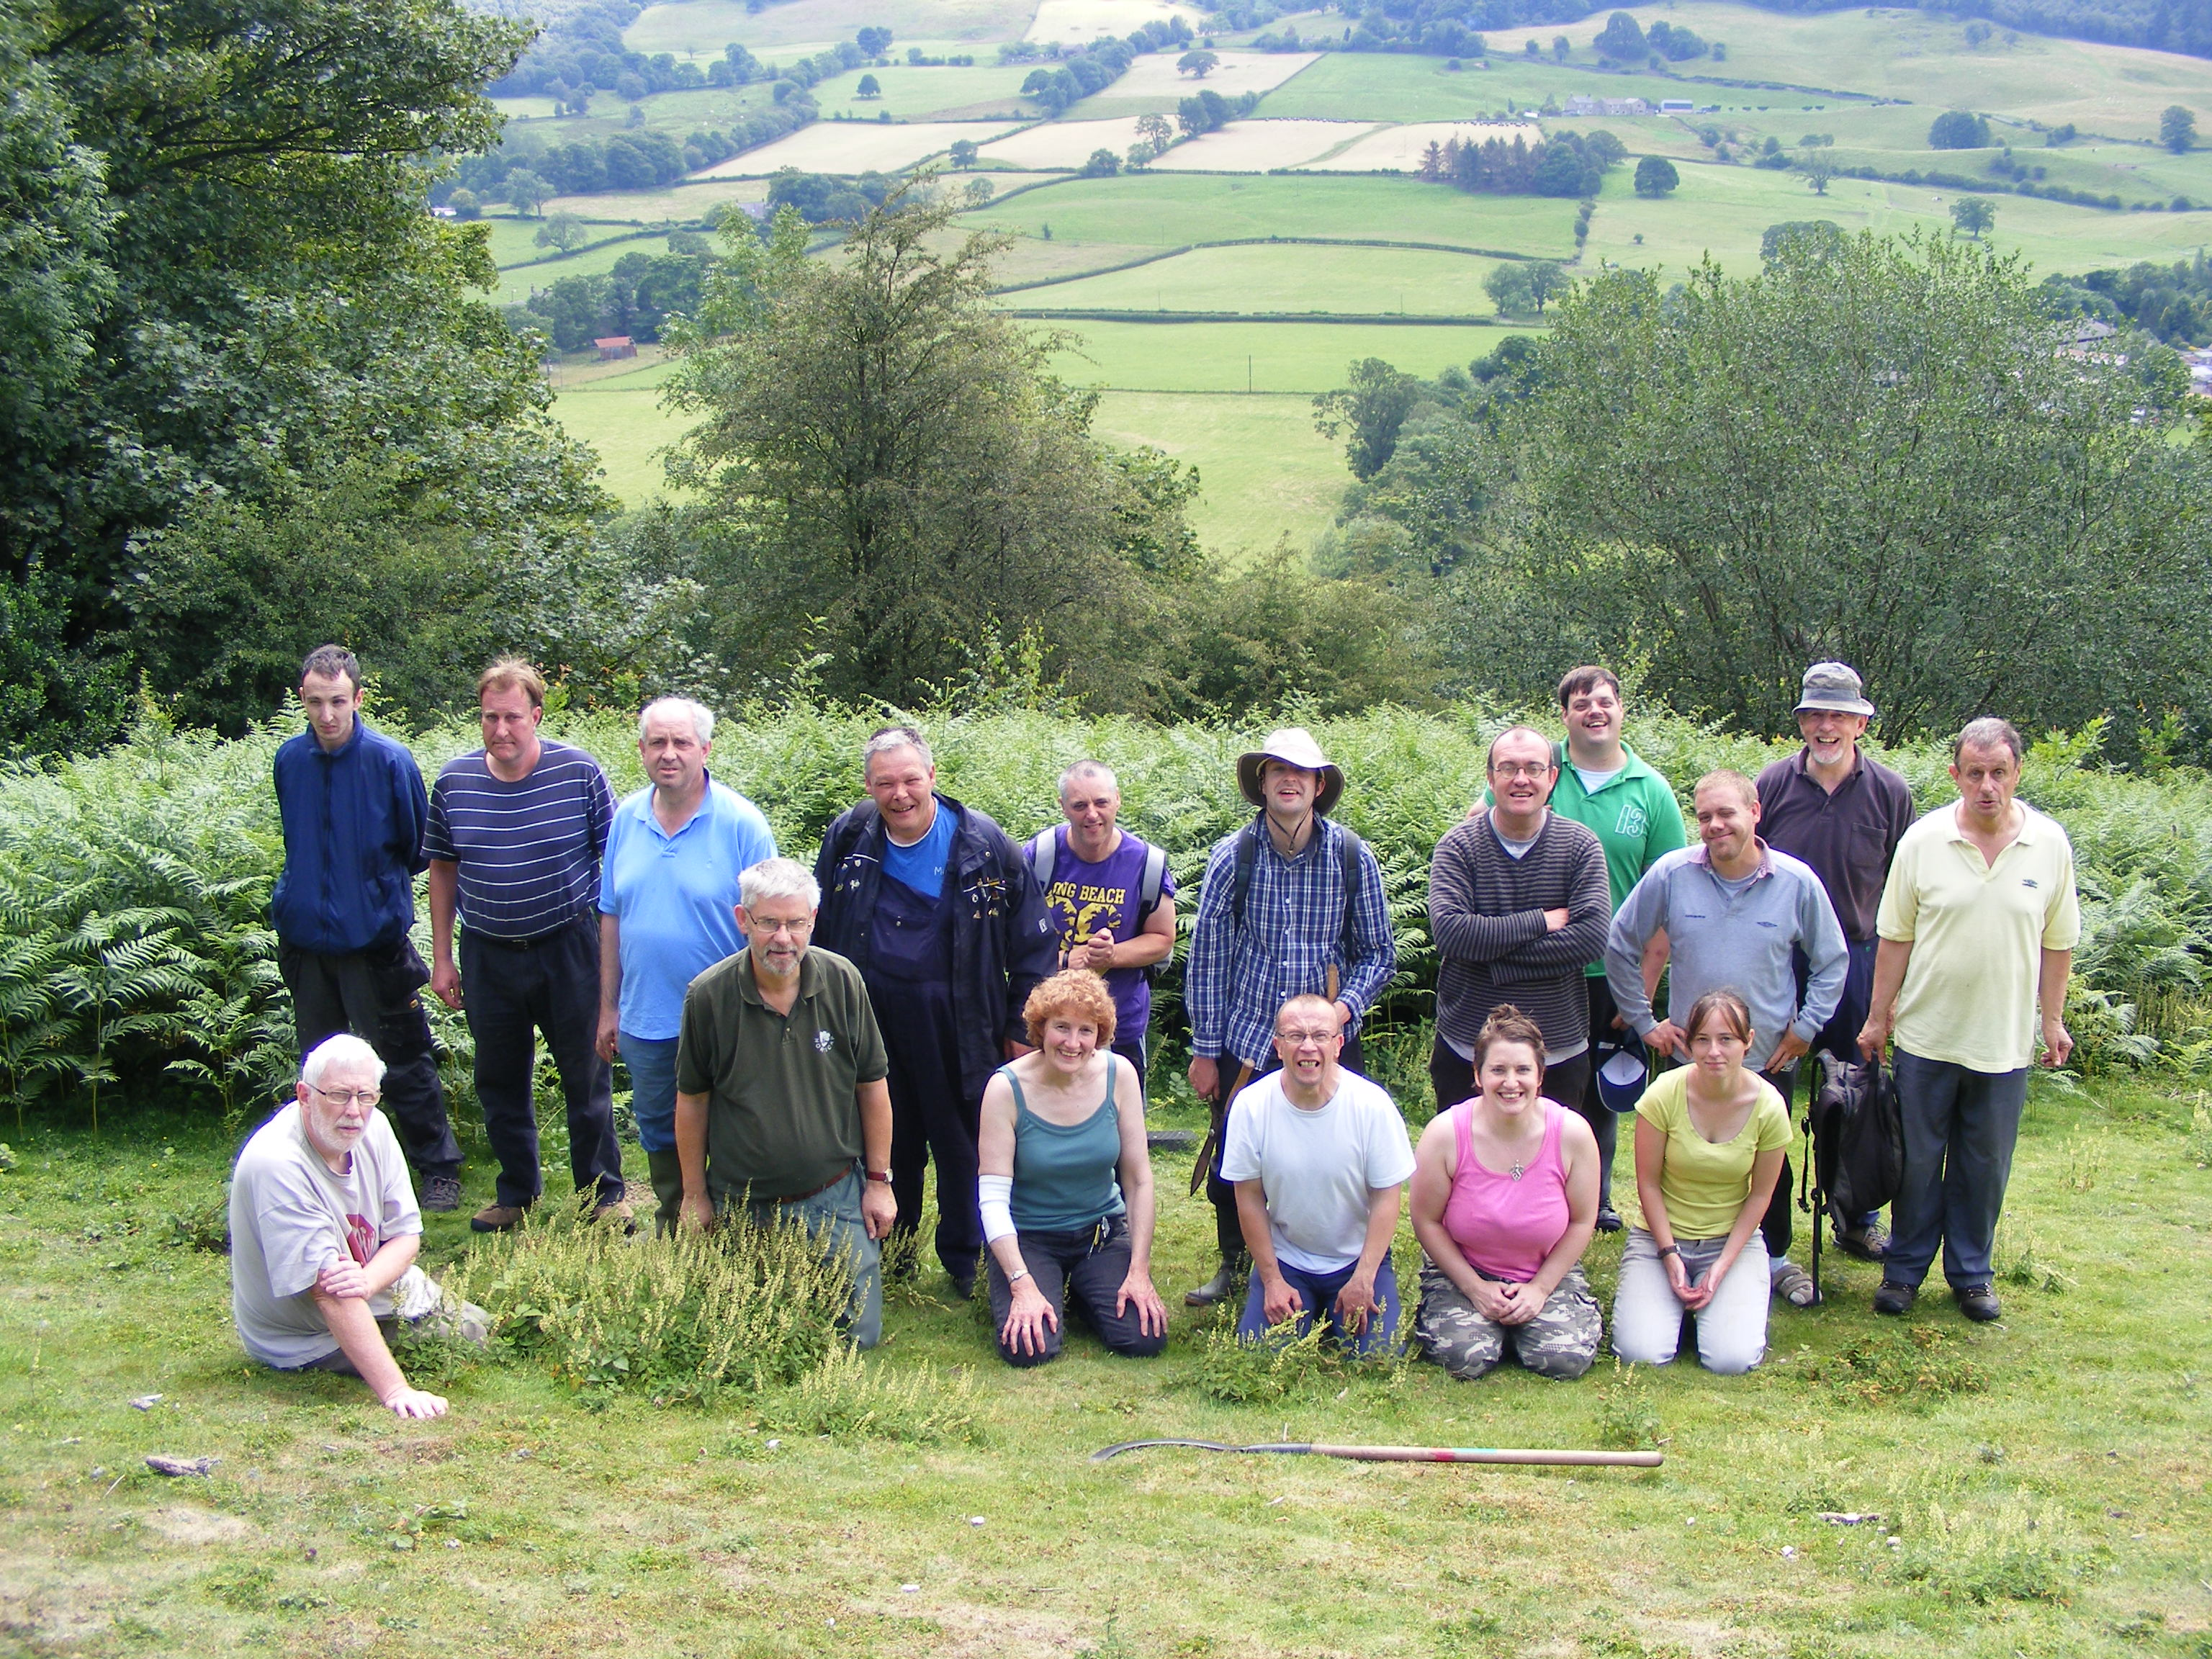 The conservation group on a summer's day with hills and trees in the background.